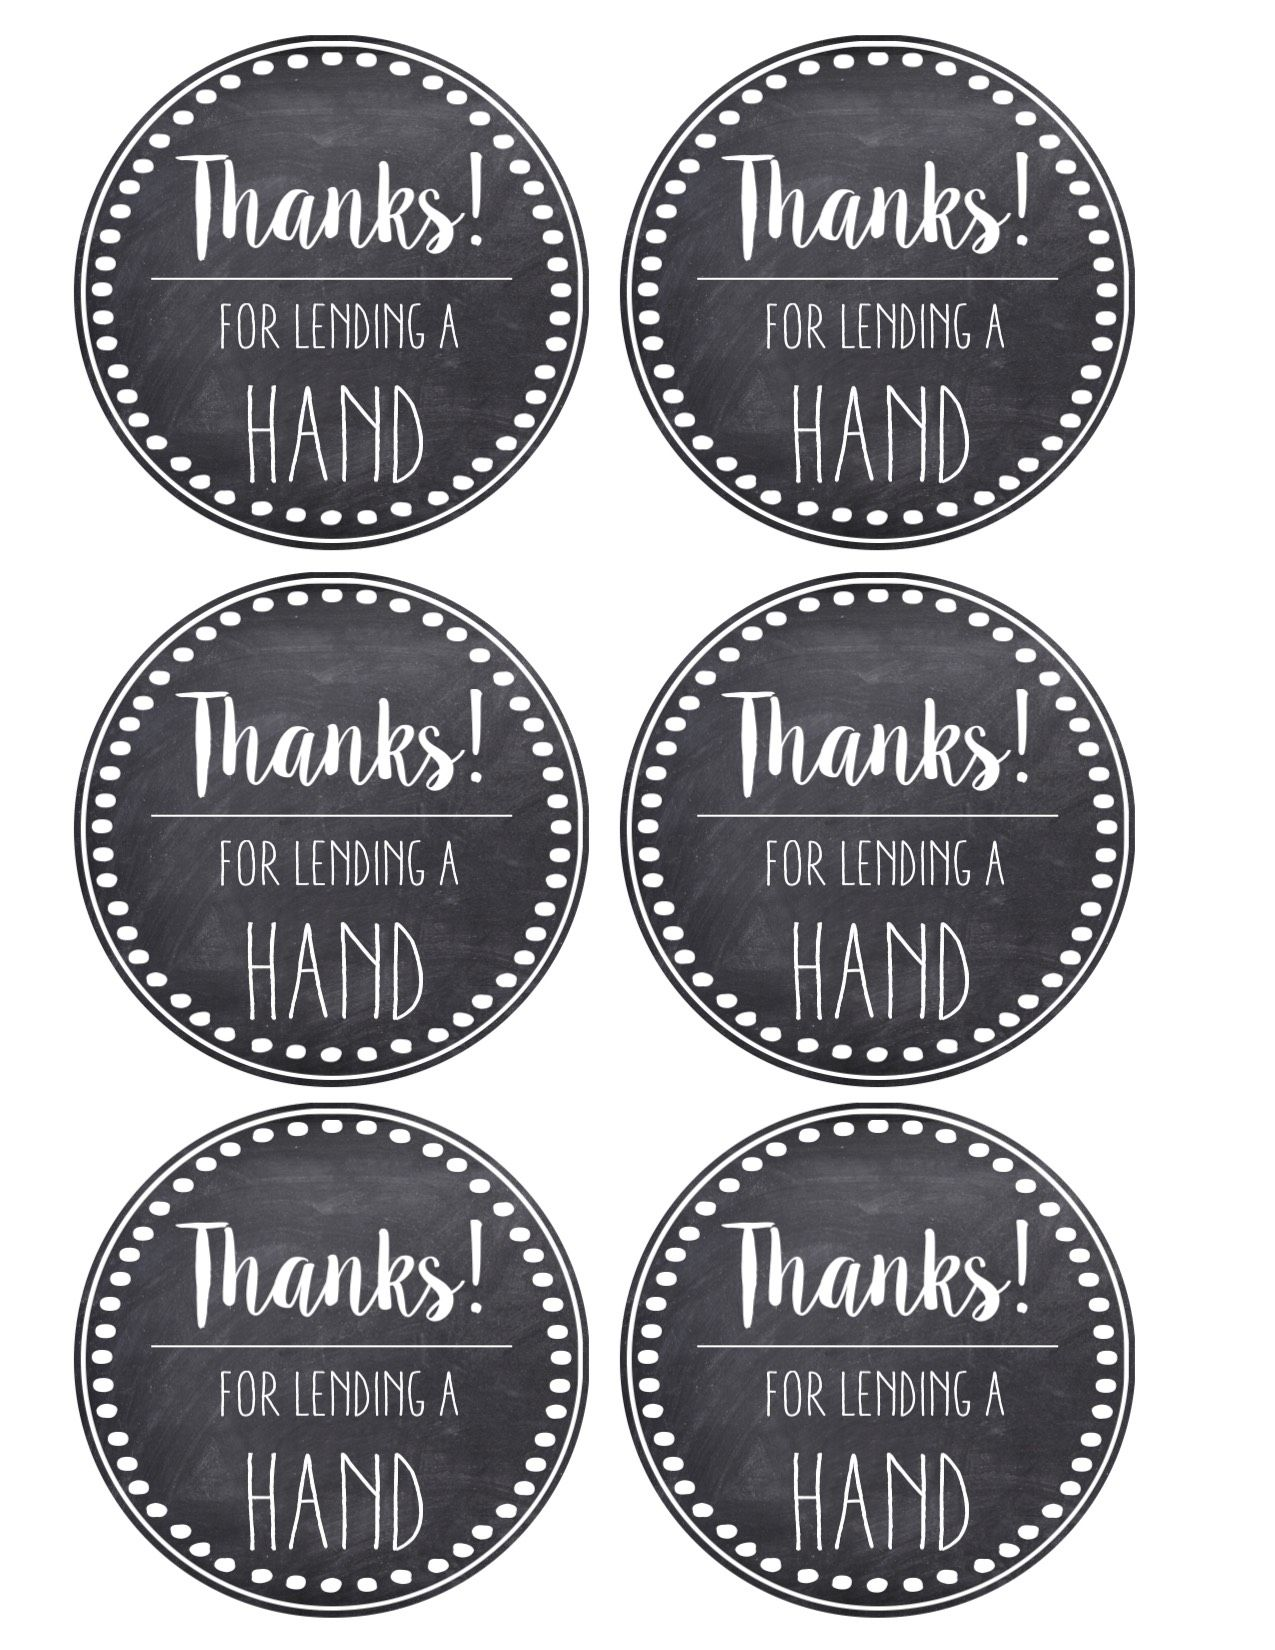 Thank you teacher appreciation tags free printable card attach to thank you teacher appreciation tags free printable card attach to hand soap hand lotion a pedicure gift certificate hand sanitizer nail polish negle Choice Image